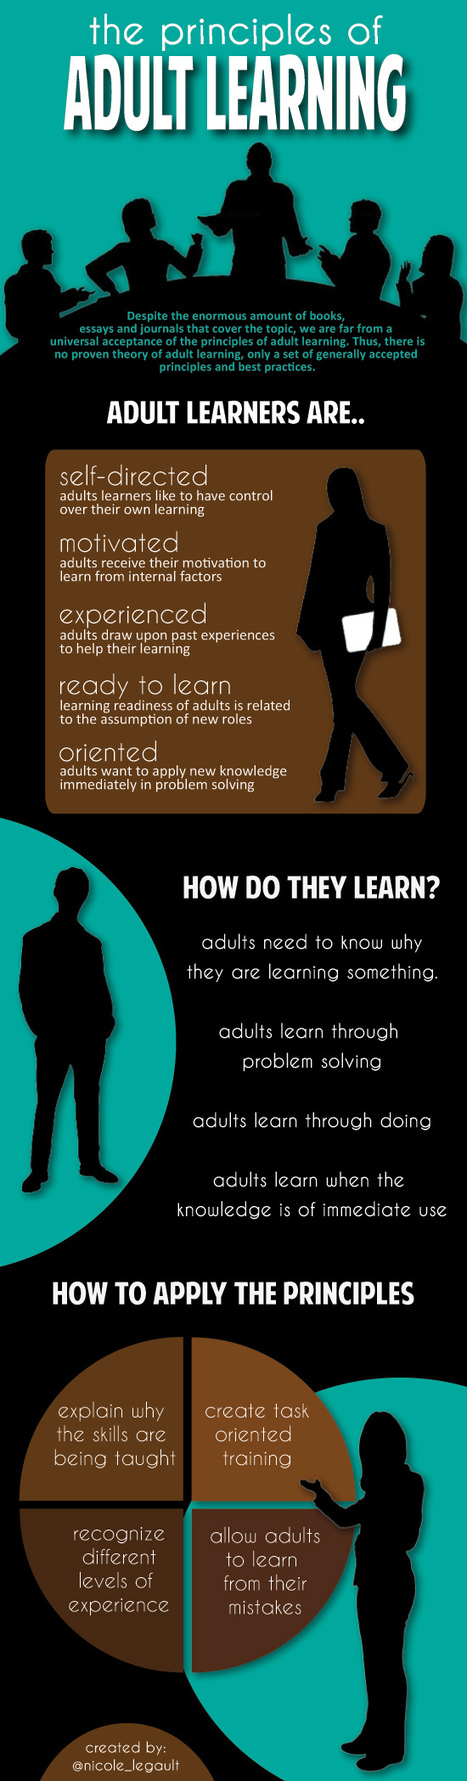 [INFOGRAPHIC] An Overview of the Principles of Adult Learning | ICT in Professional development | Scoop.it